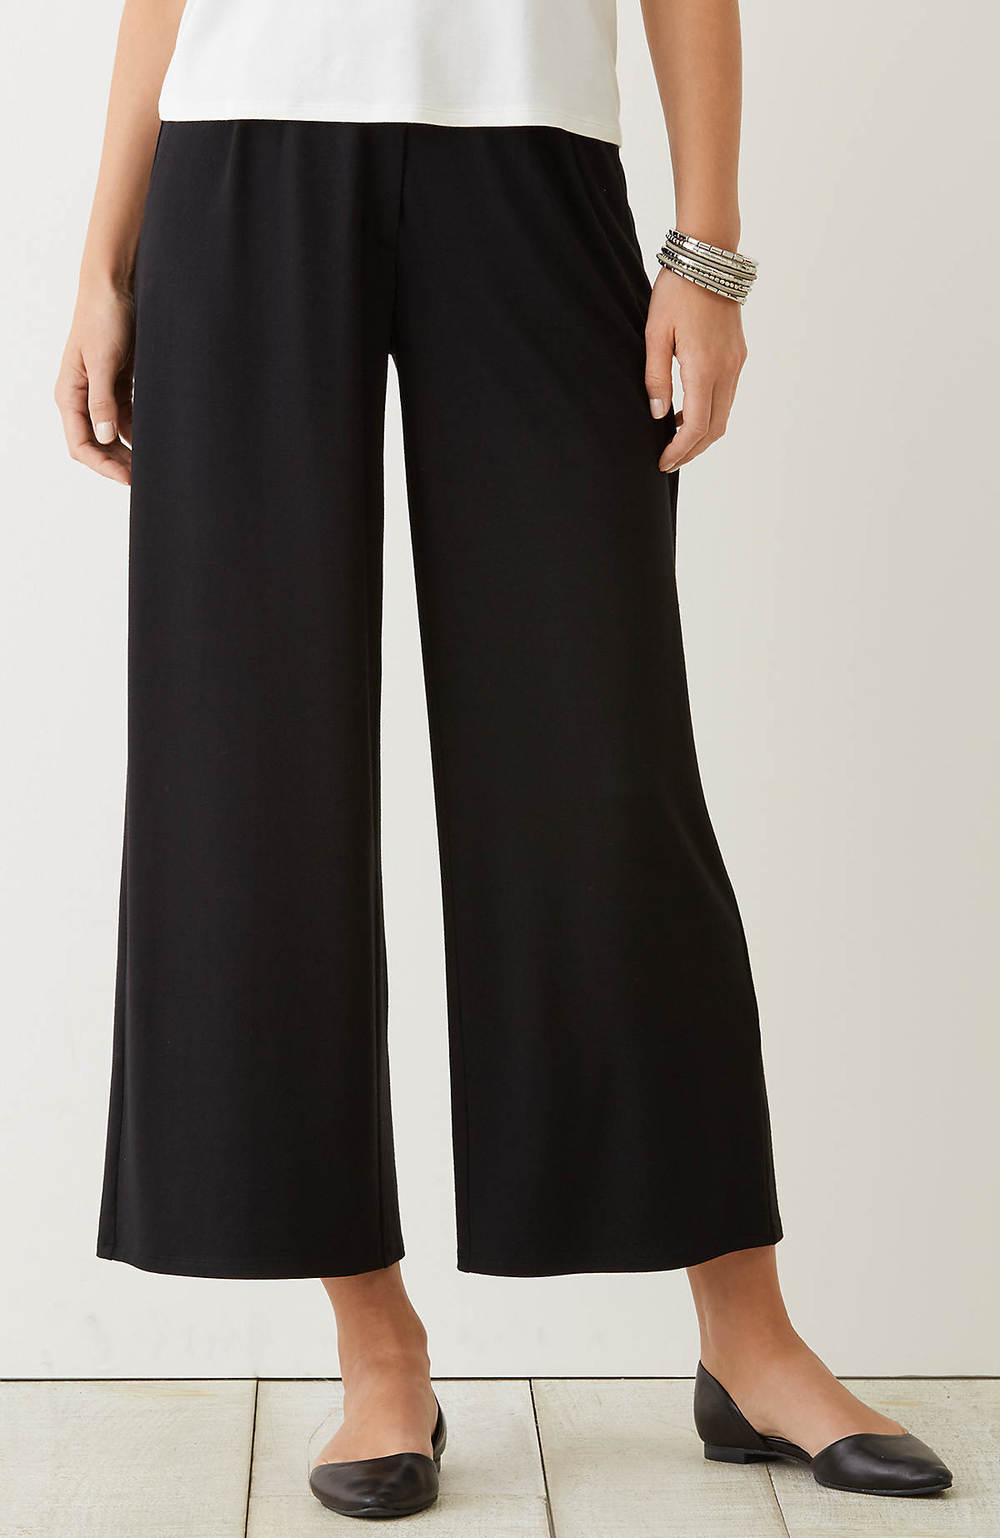 Wherever (Wrinkle Free!) Pleated Crop Trousers. J.Jill. Was: $89 Now: $59.